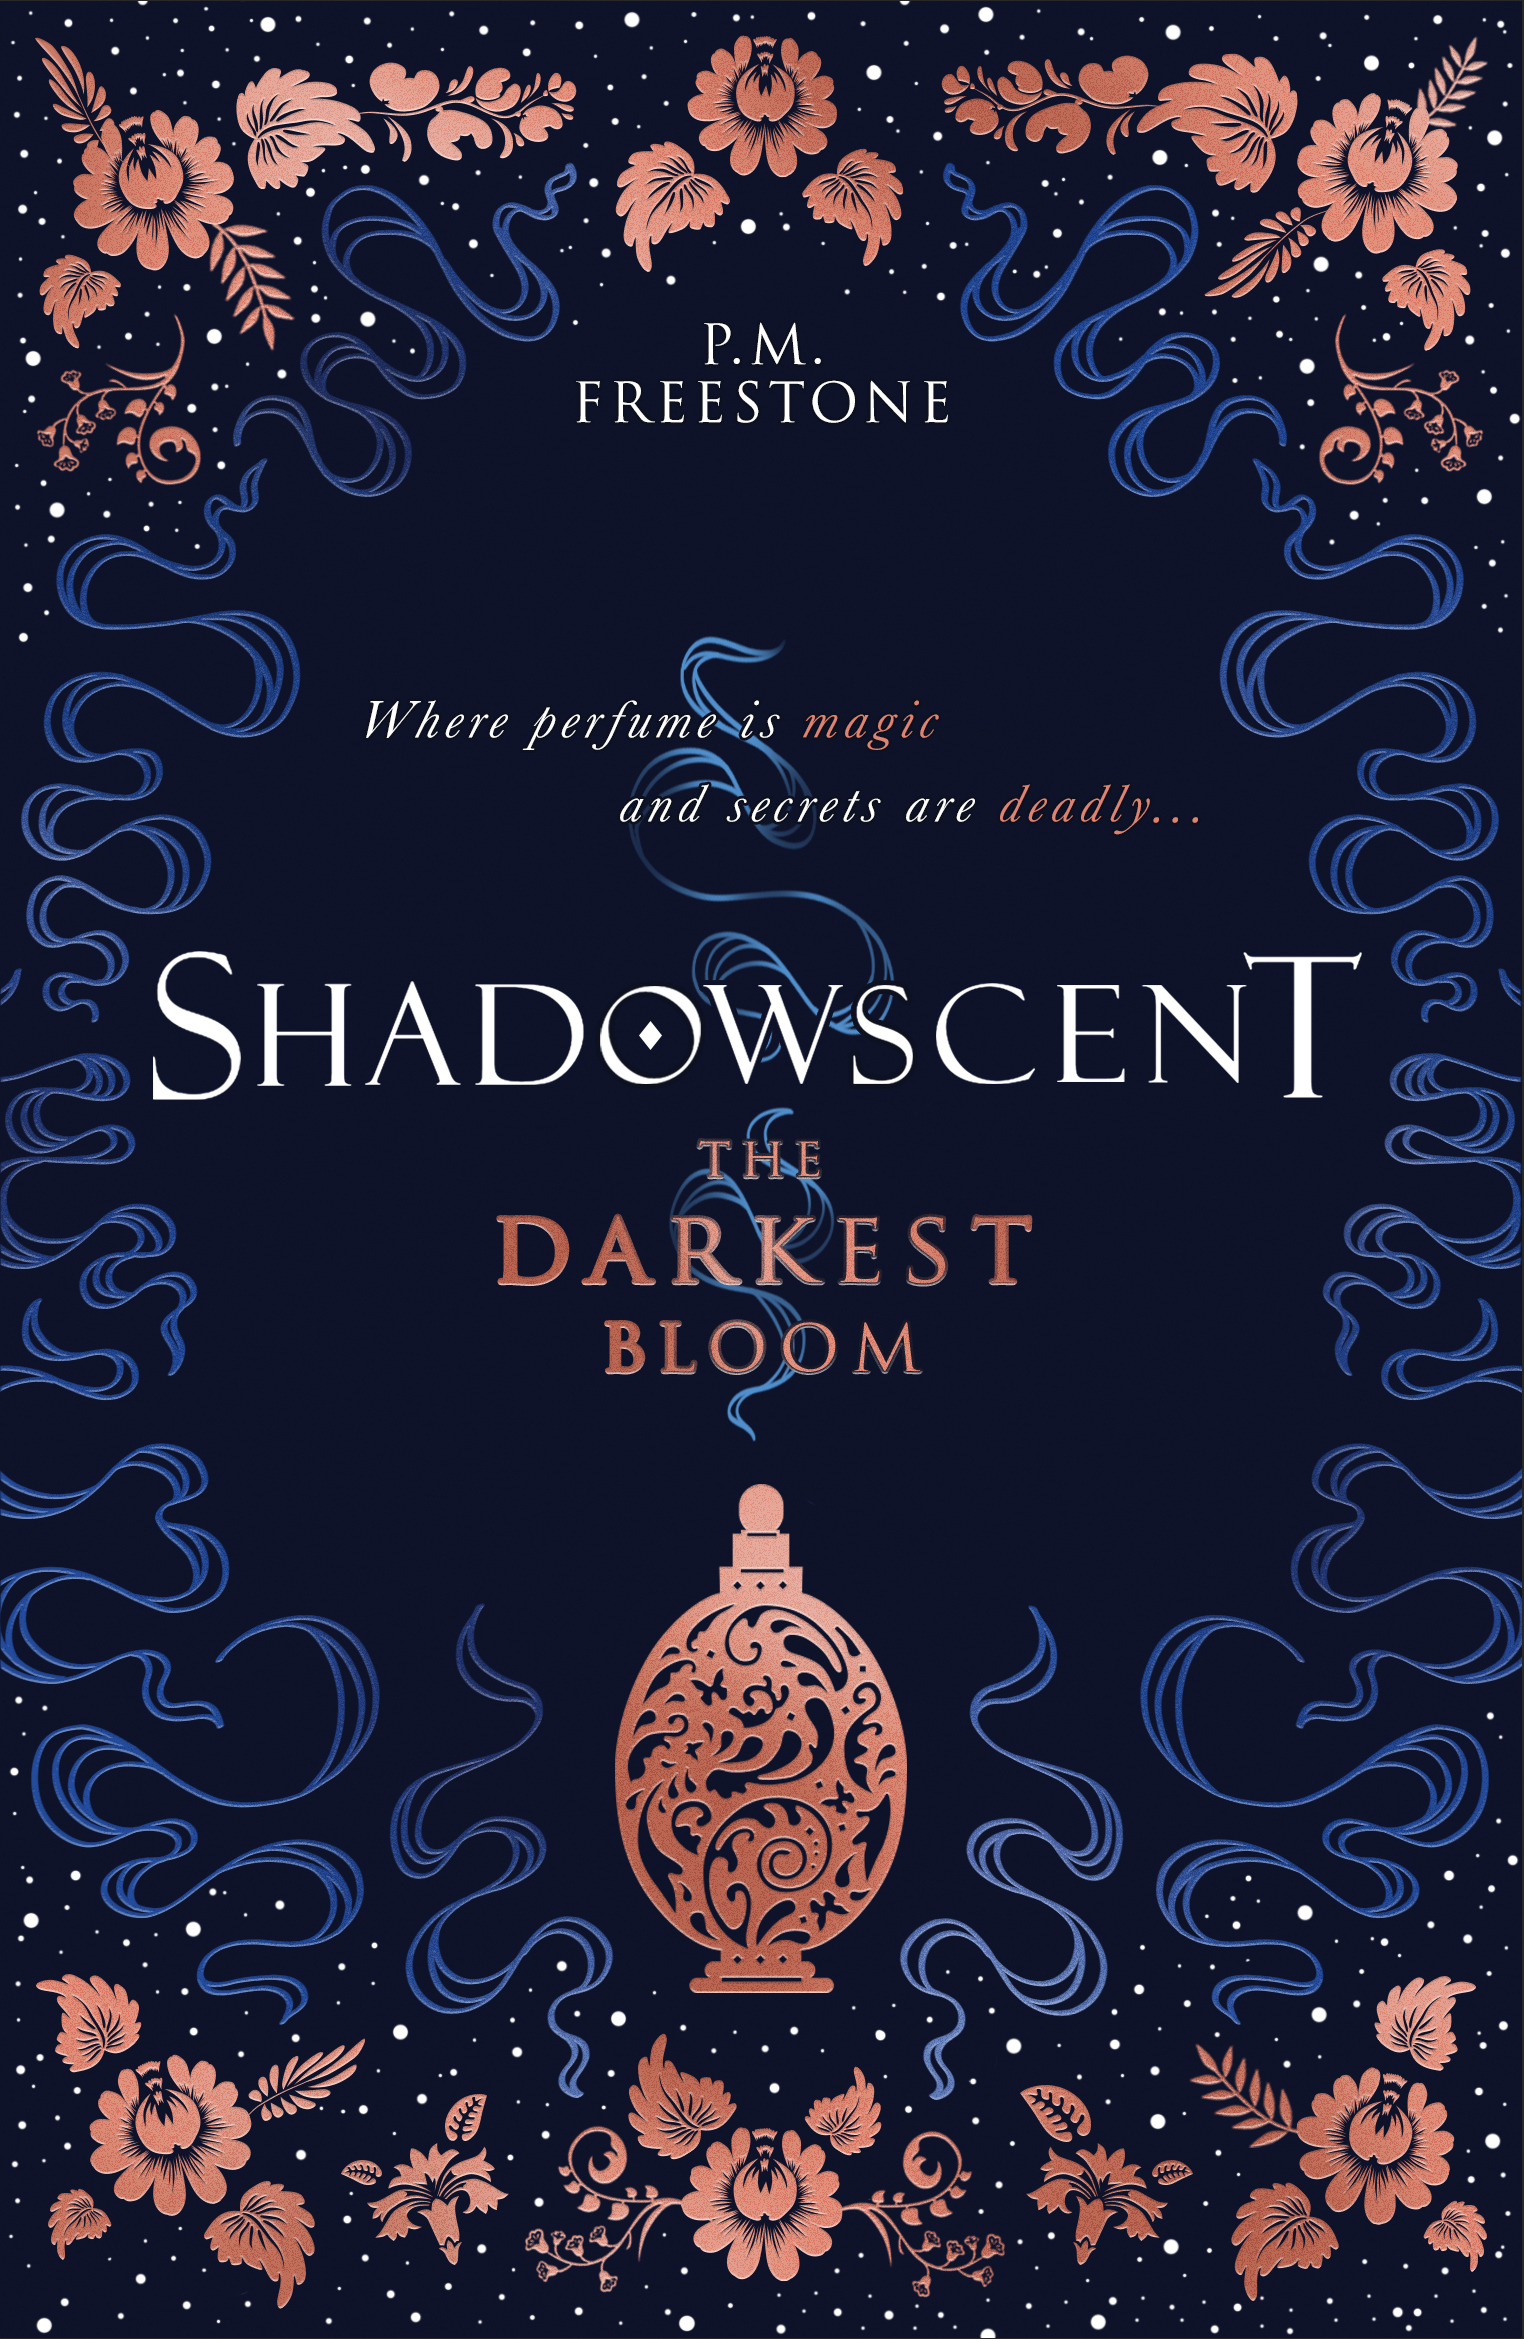 Shadowscent high-res book cover